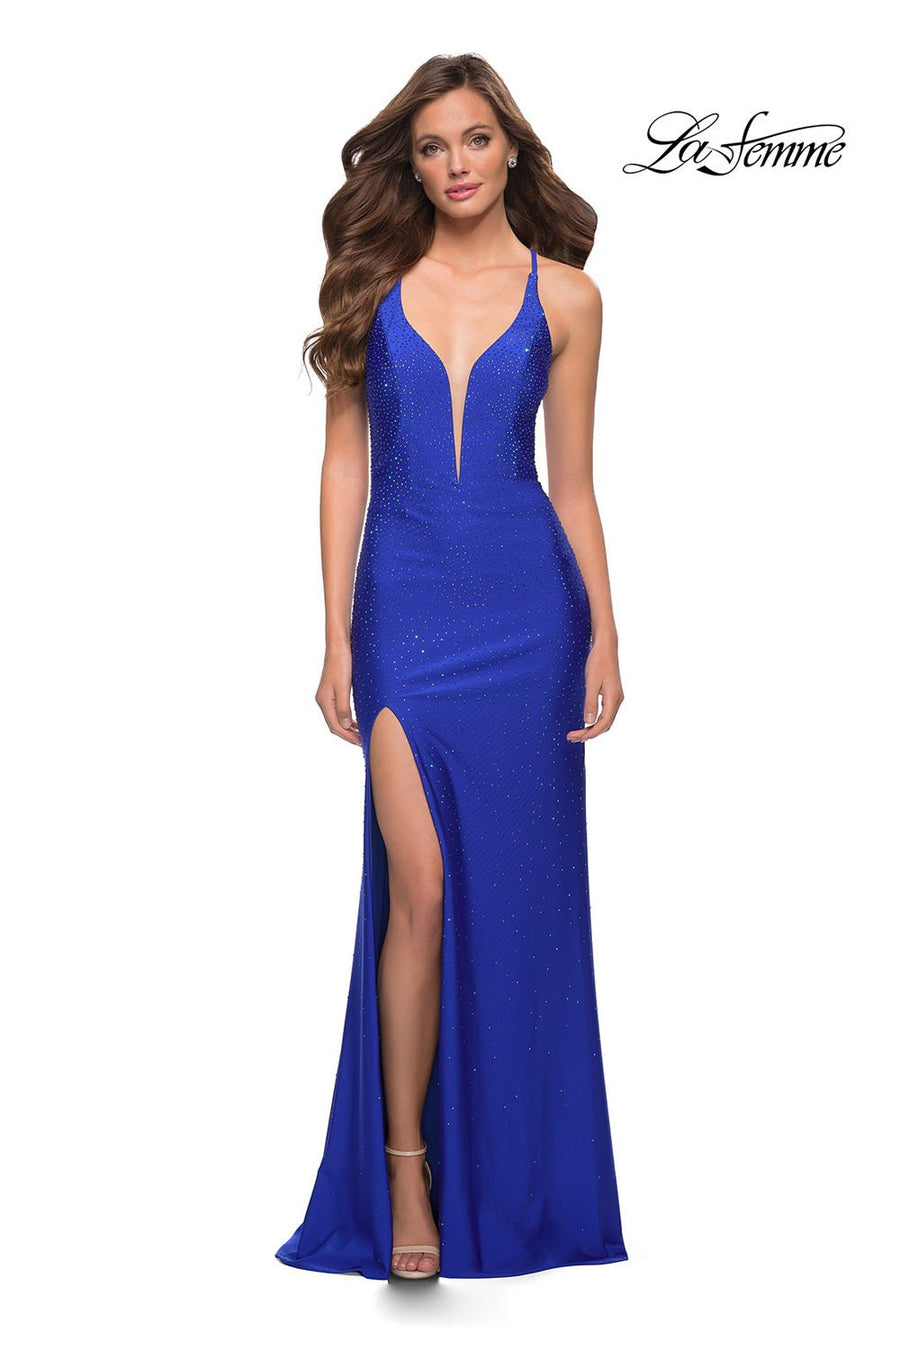 La Femme 29958 prom dress images.  La Femme 29958 is available in these colors: Royal Blue.